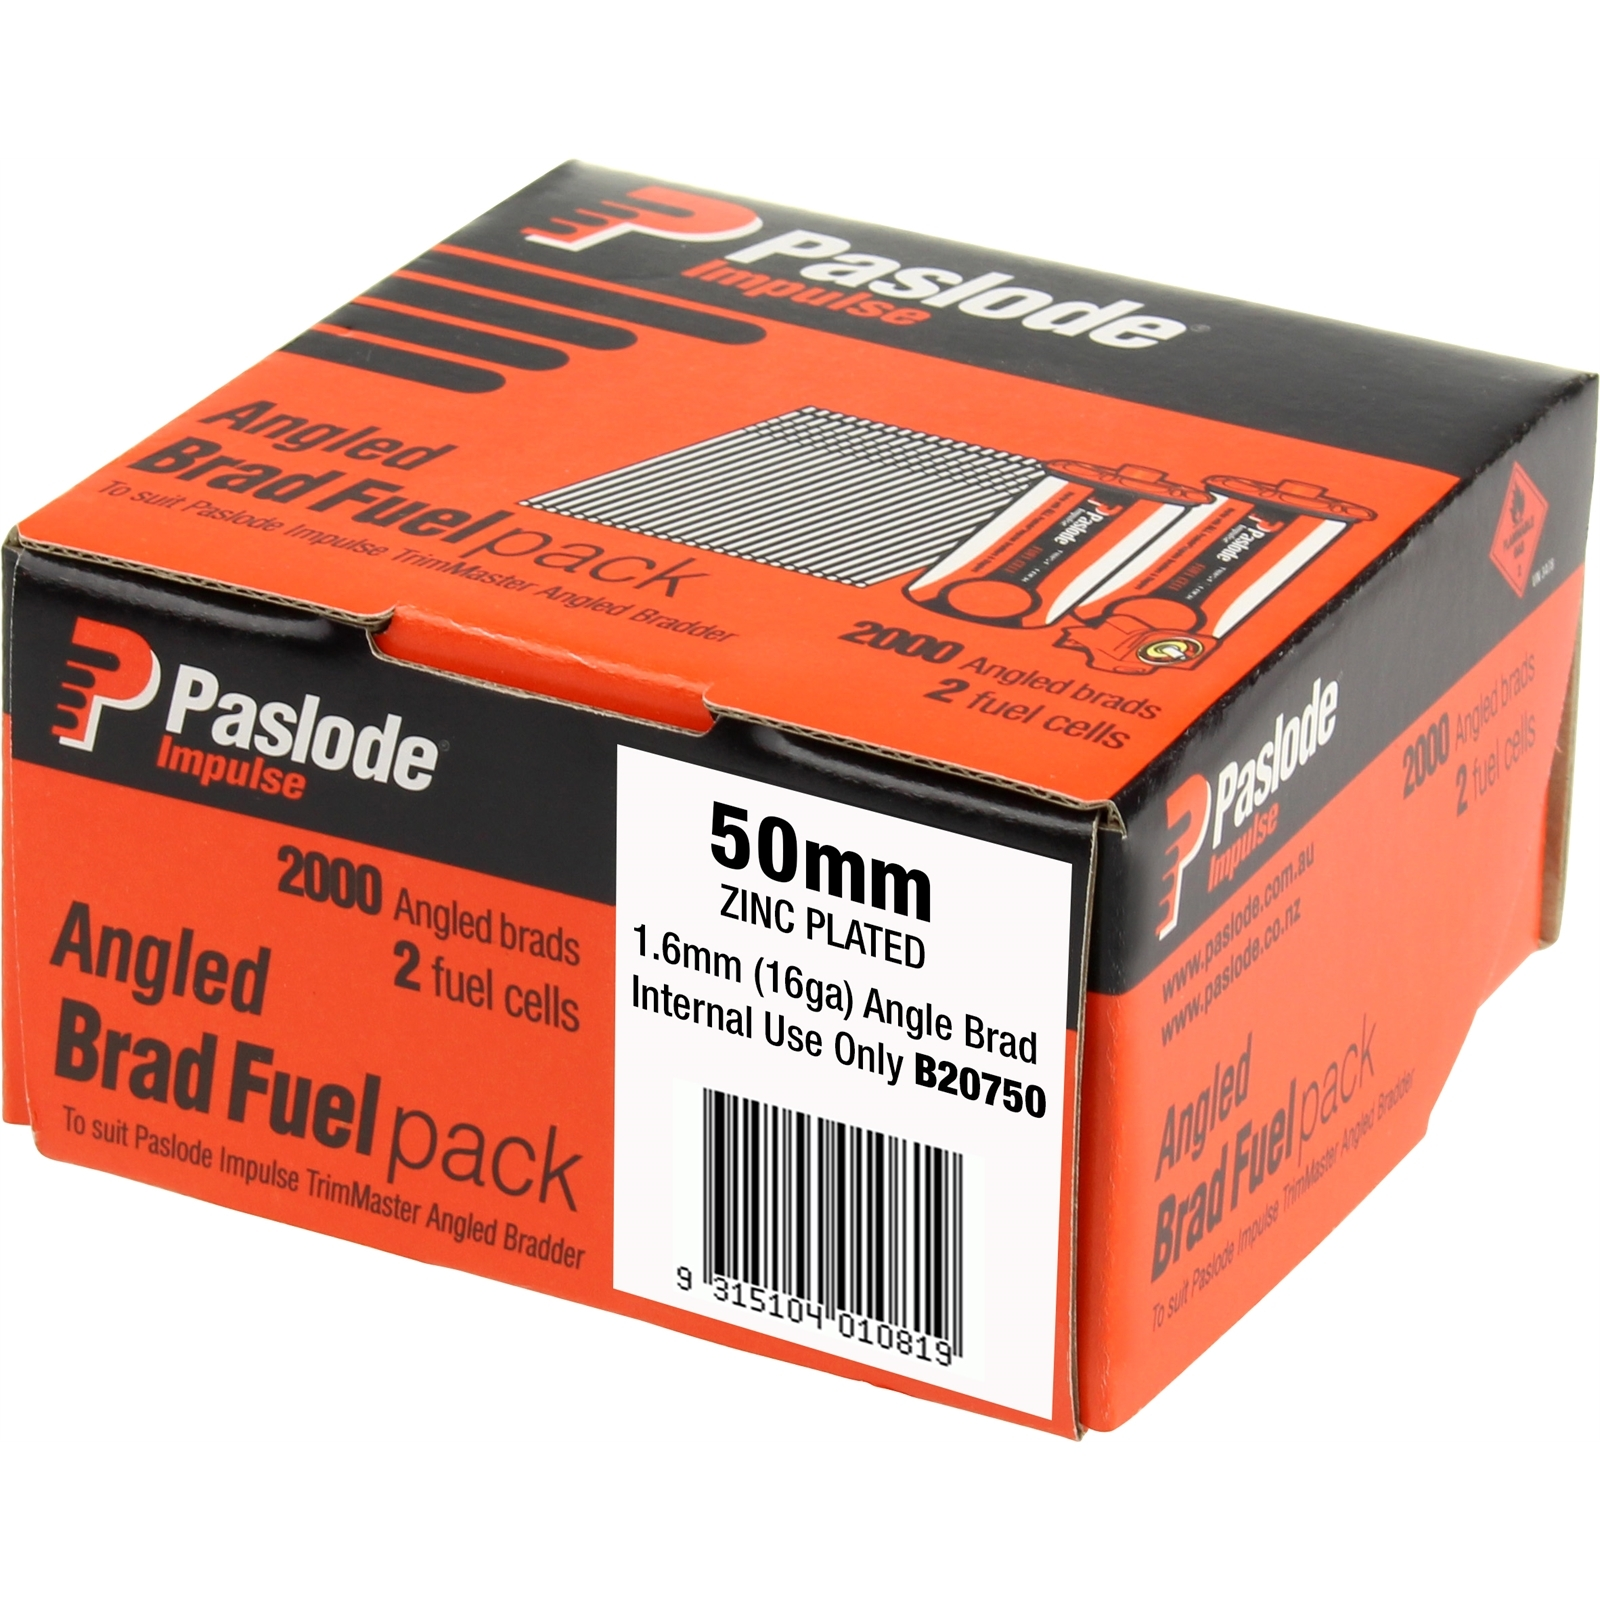 Paslode 50 x 1.6mm Impulse Zinc Plated Angled Brad Fuel - 2000 Pack